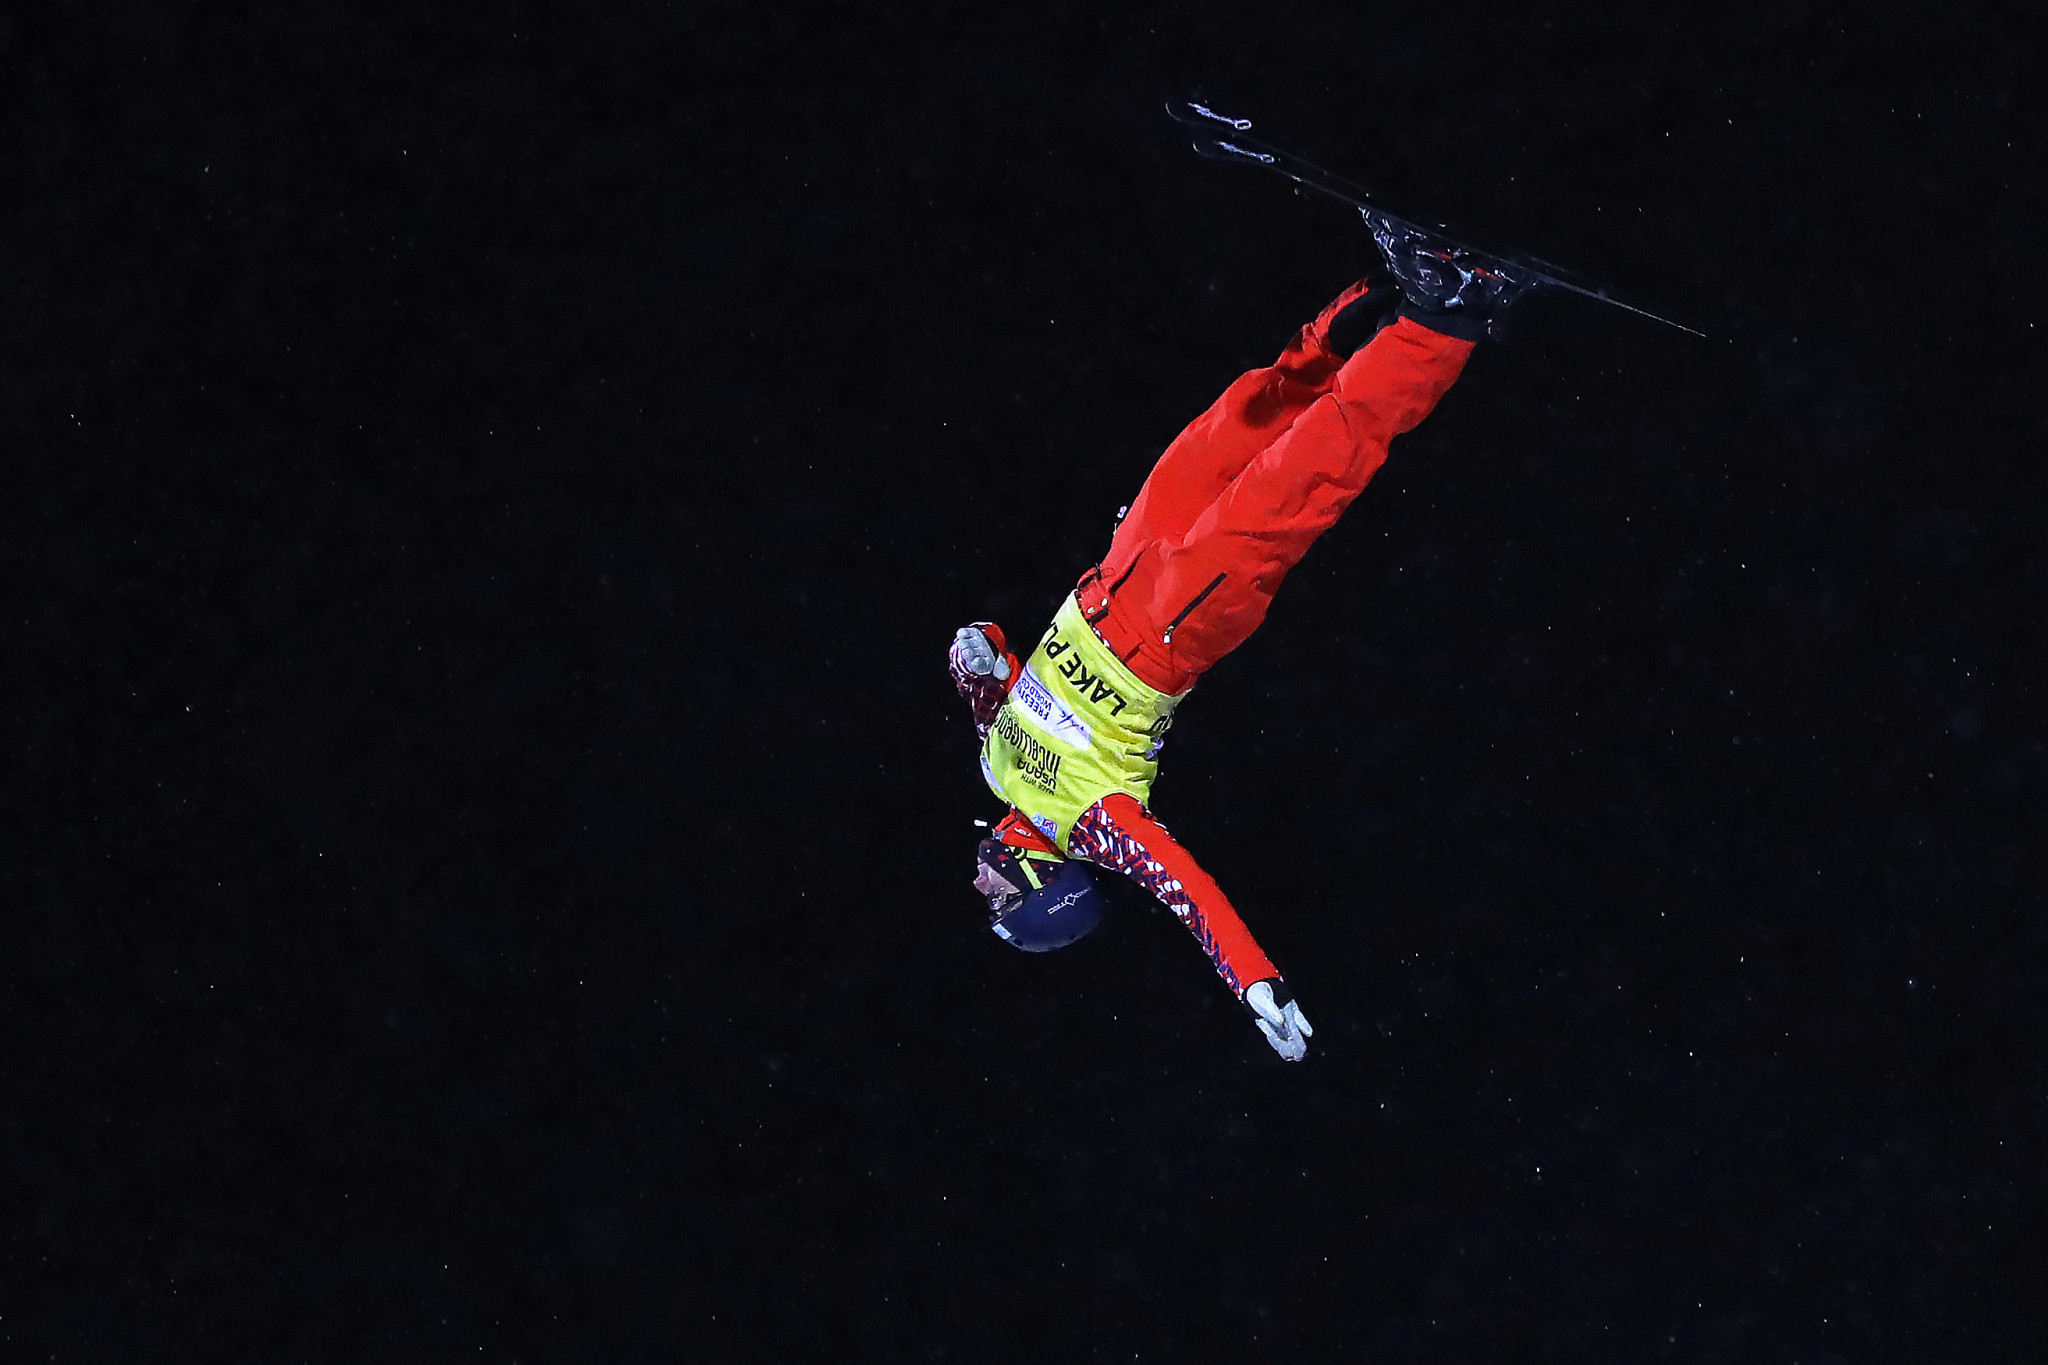 Burov continues FIS Aerials World Cup dominance with fifth victory in Minsk